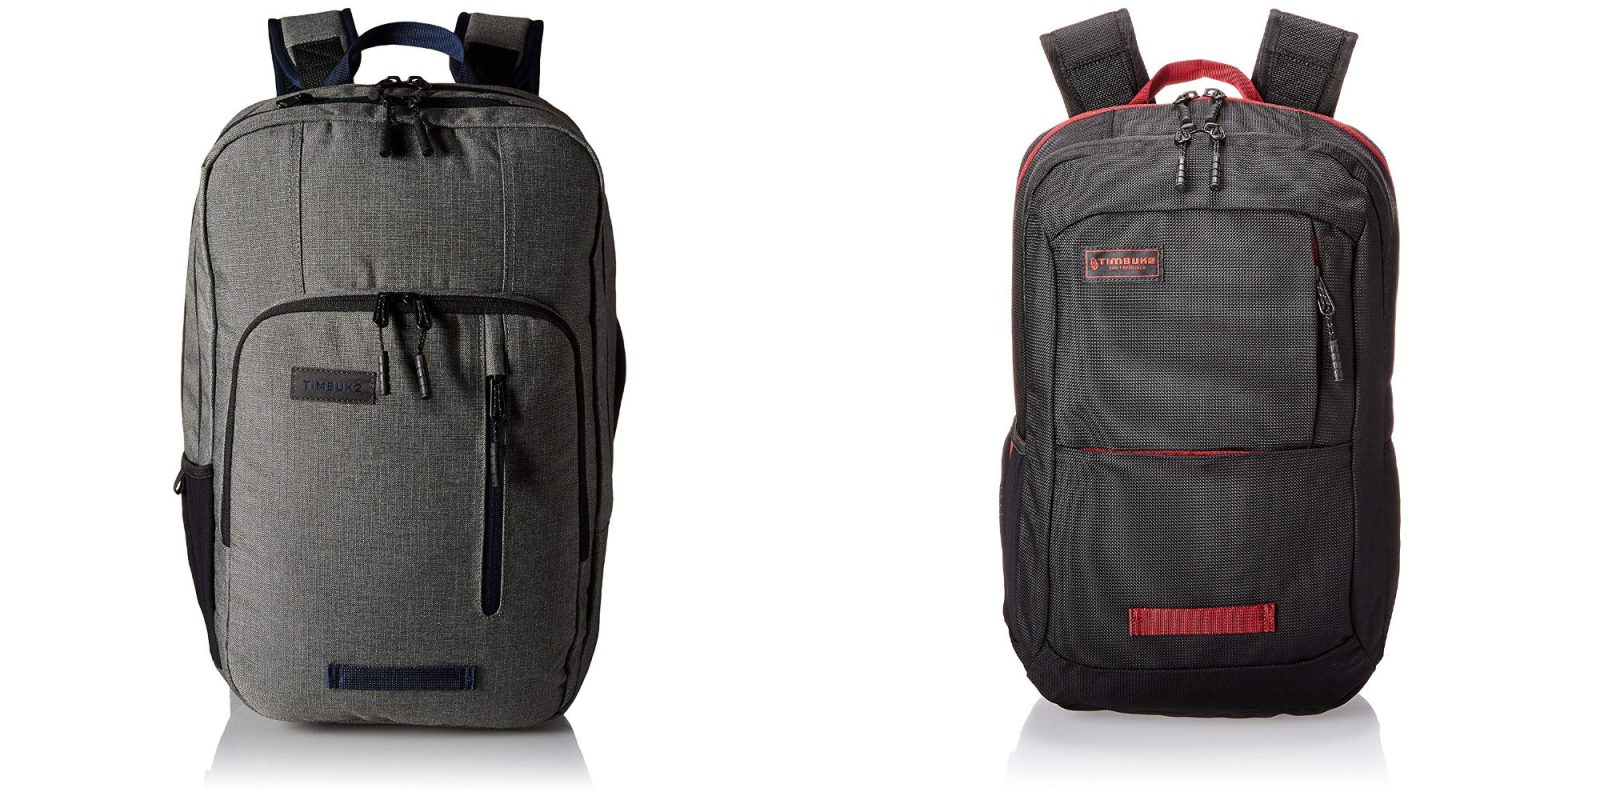 a1205f01b Two of Timbuk2's MacBook-friendly backpacks are on sale at Amazon from $40  (Reg. up to $119)